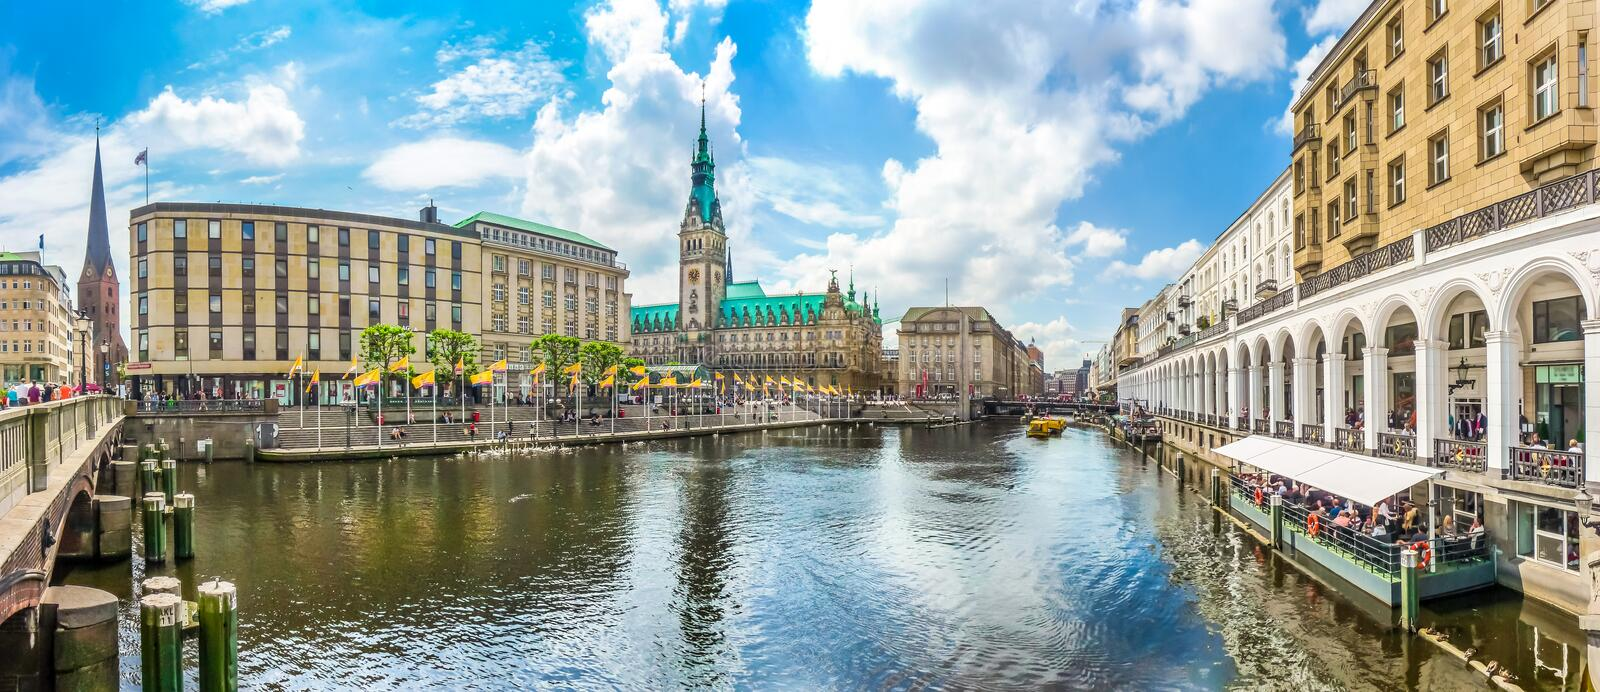 Hamburg city center with town hall and Alster river, Germany. Beautiful view of Hamburg city center with town hall and Alster river, Germany royalty free stock photo